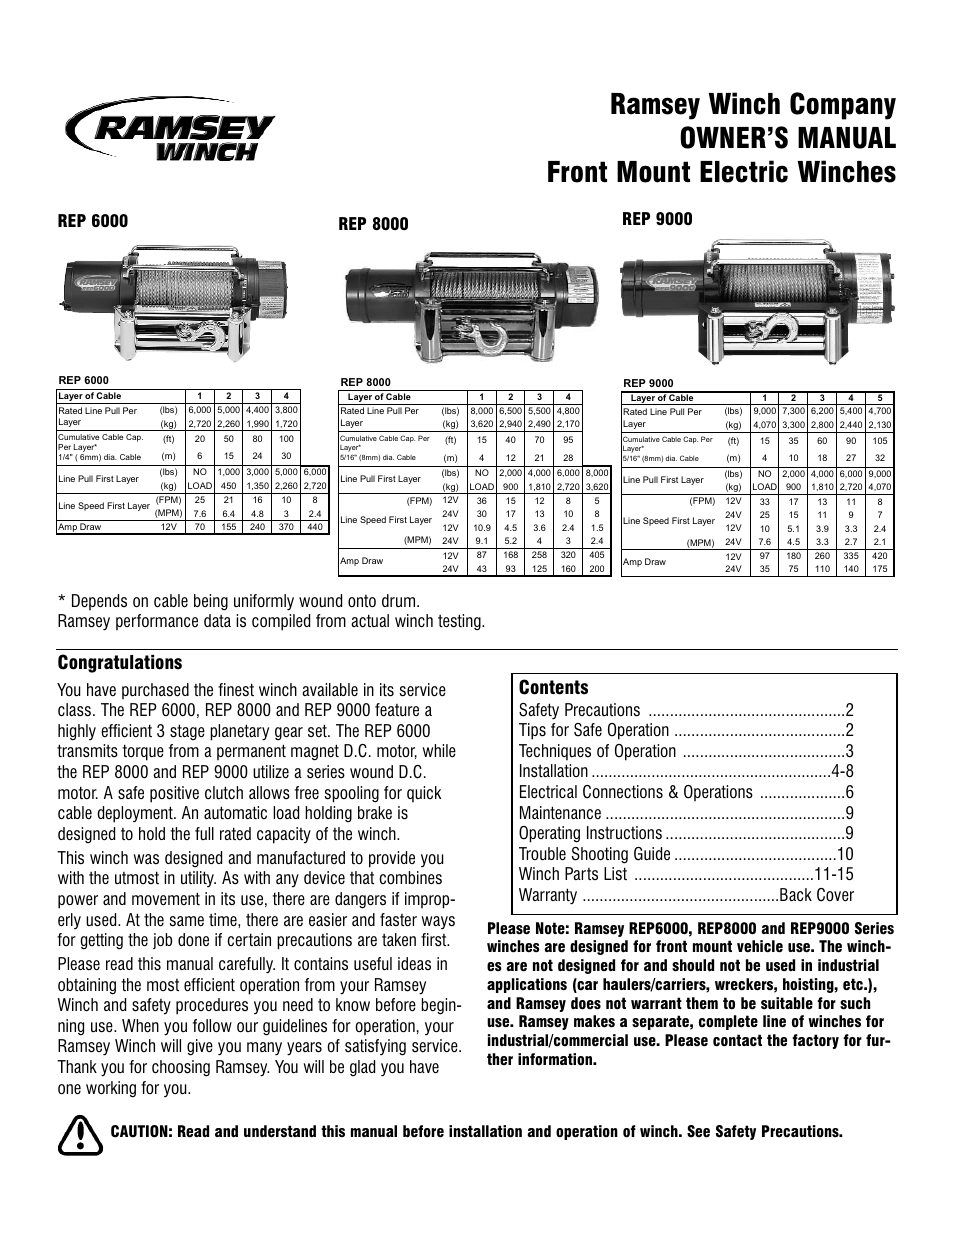 ramsey winch rep 8000 manual wiring diagram for you • ramsey winch rep 6000 8000 9000 current user manual 16 pages ramsey rep 9000 winch parts ramsey 8000 winch wiring diagram